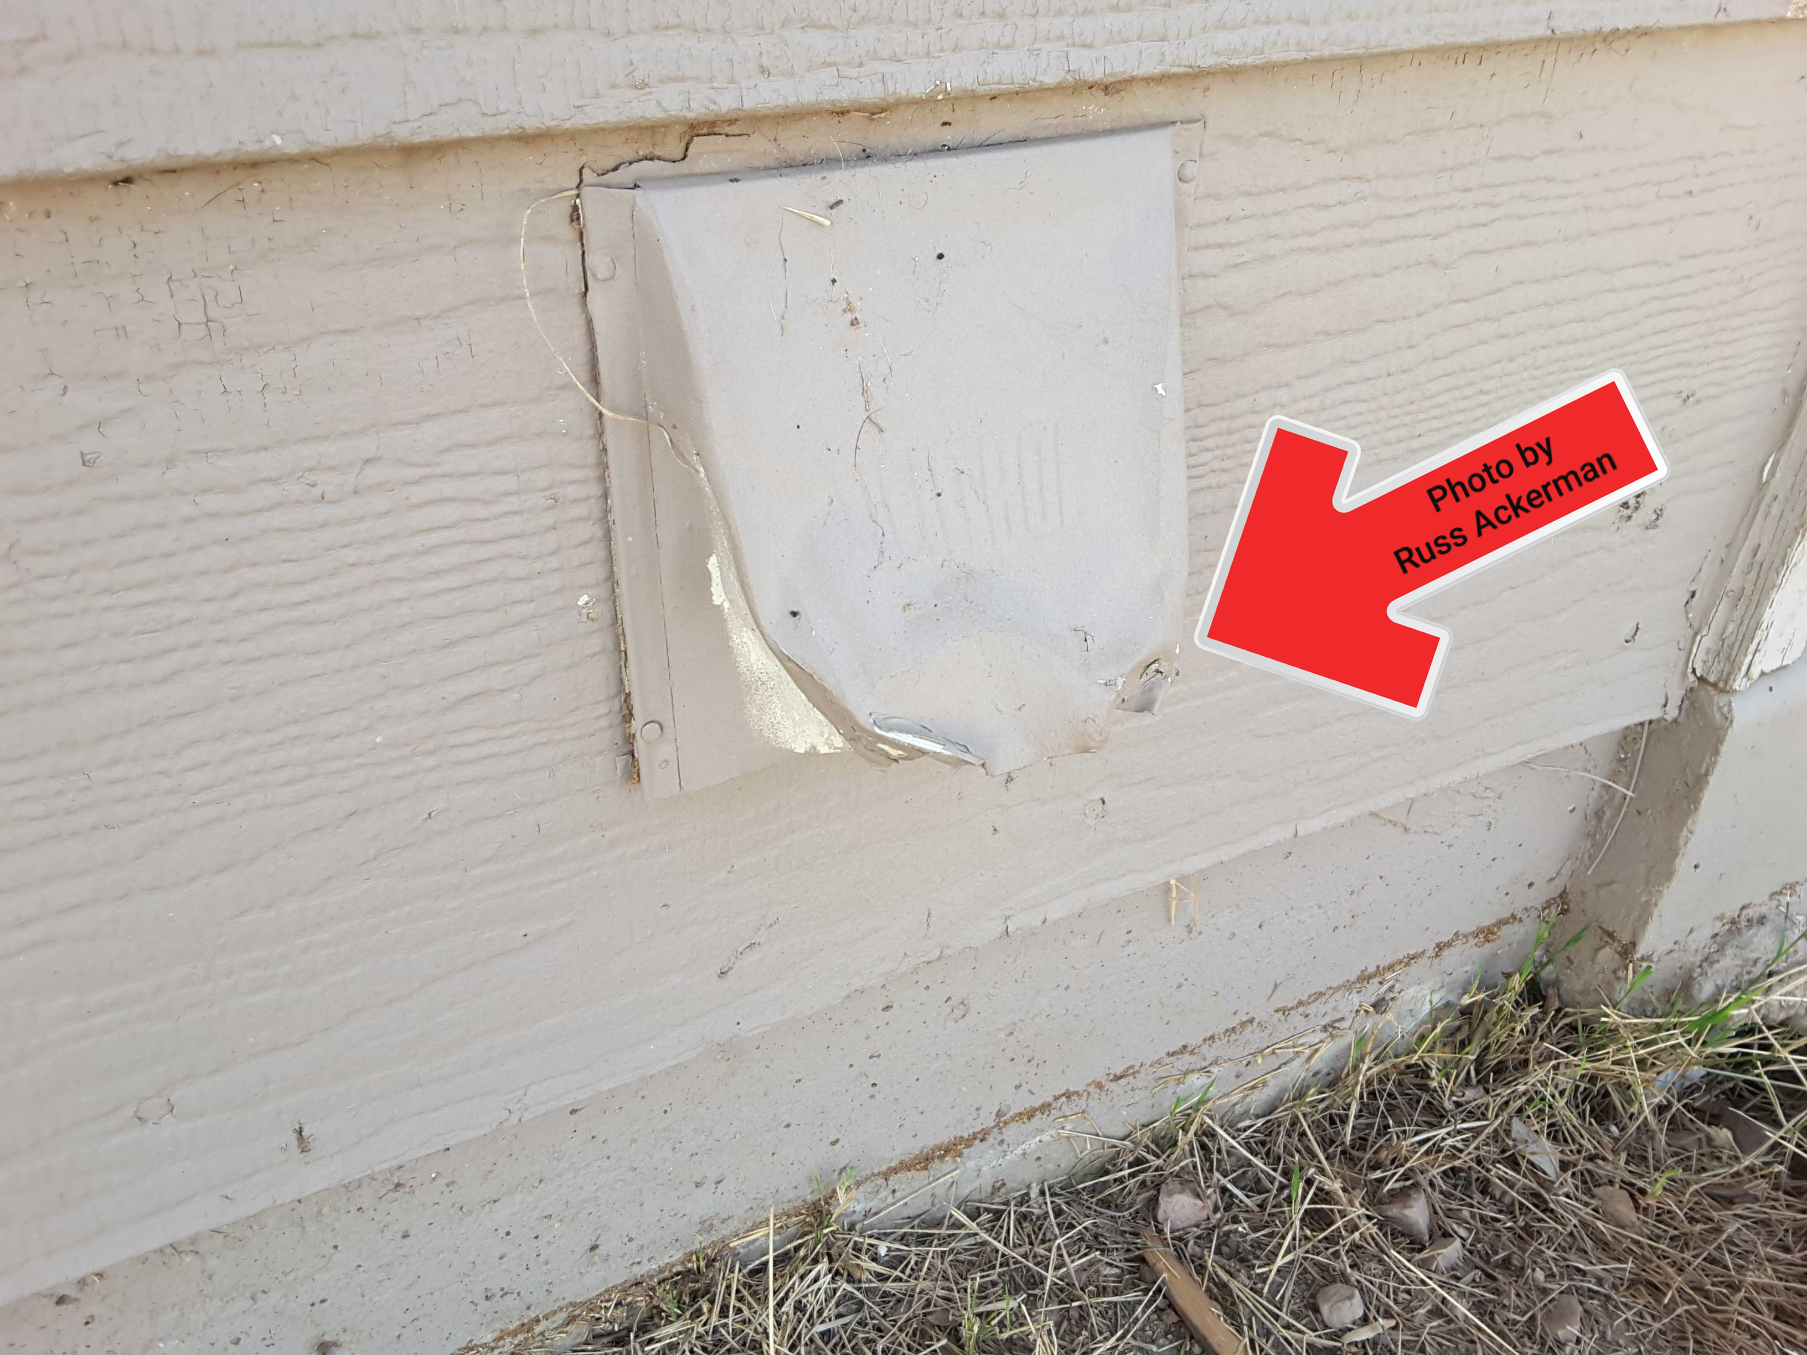 Exterior dryer vent discharge is bent and stuck in open position with no screen. Total replacement is needed.